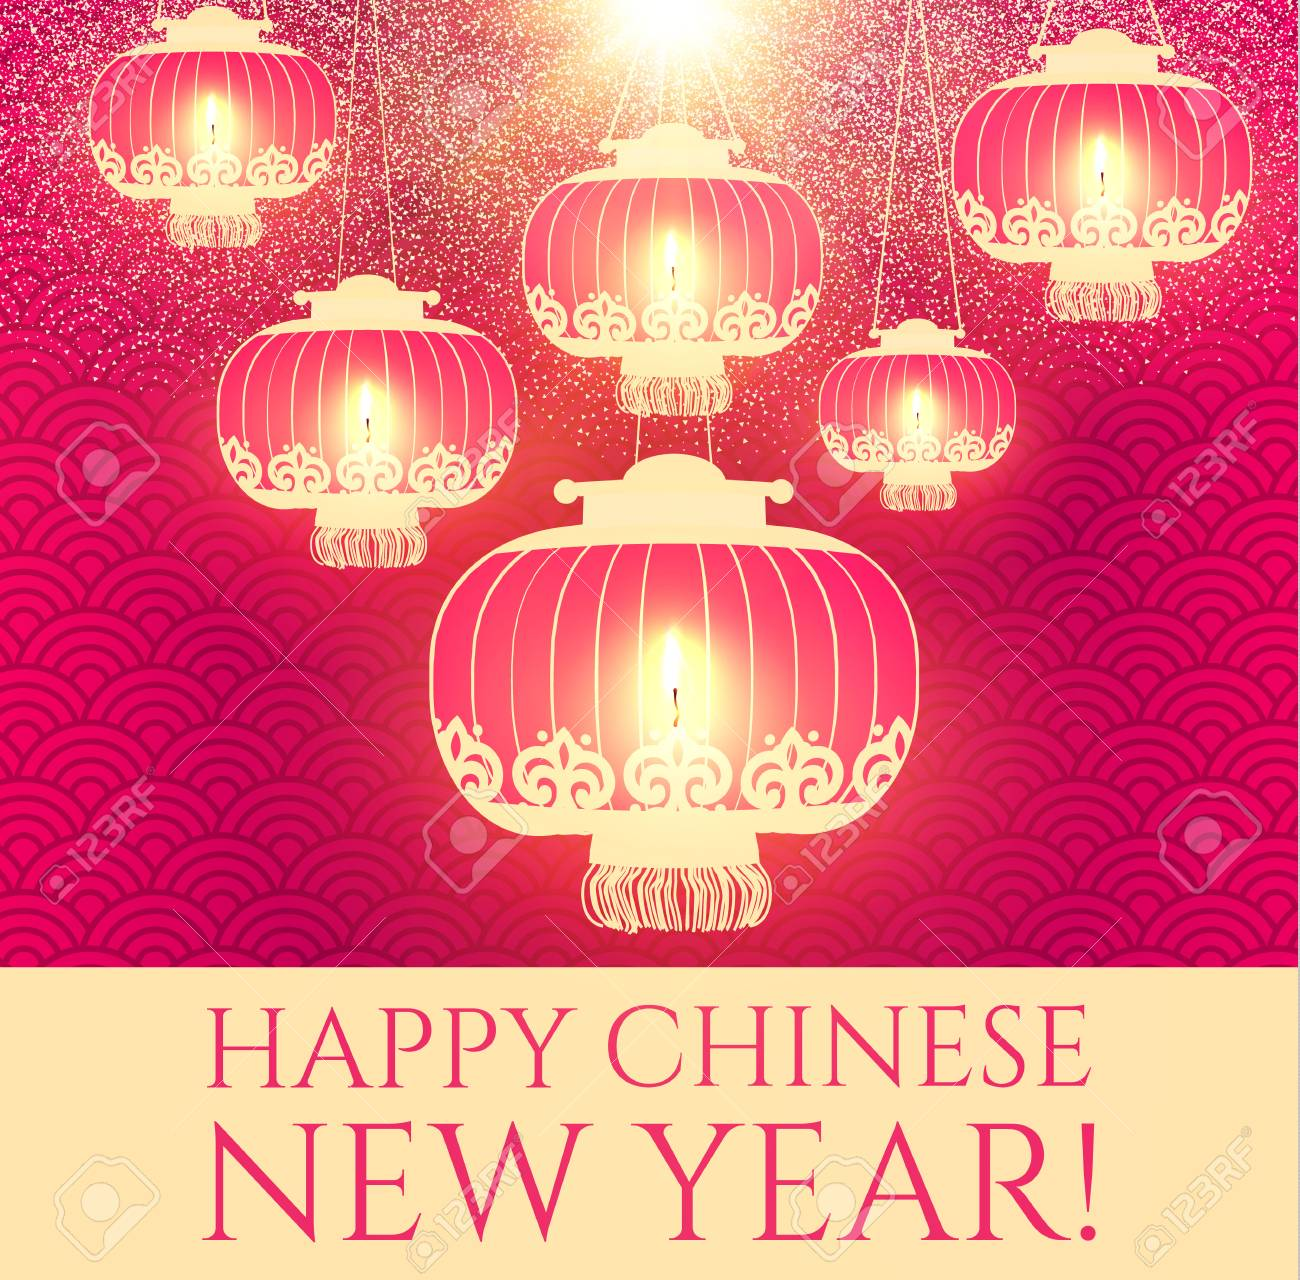 happy chinese 2018 new year background with lanterns and lights